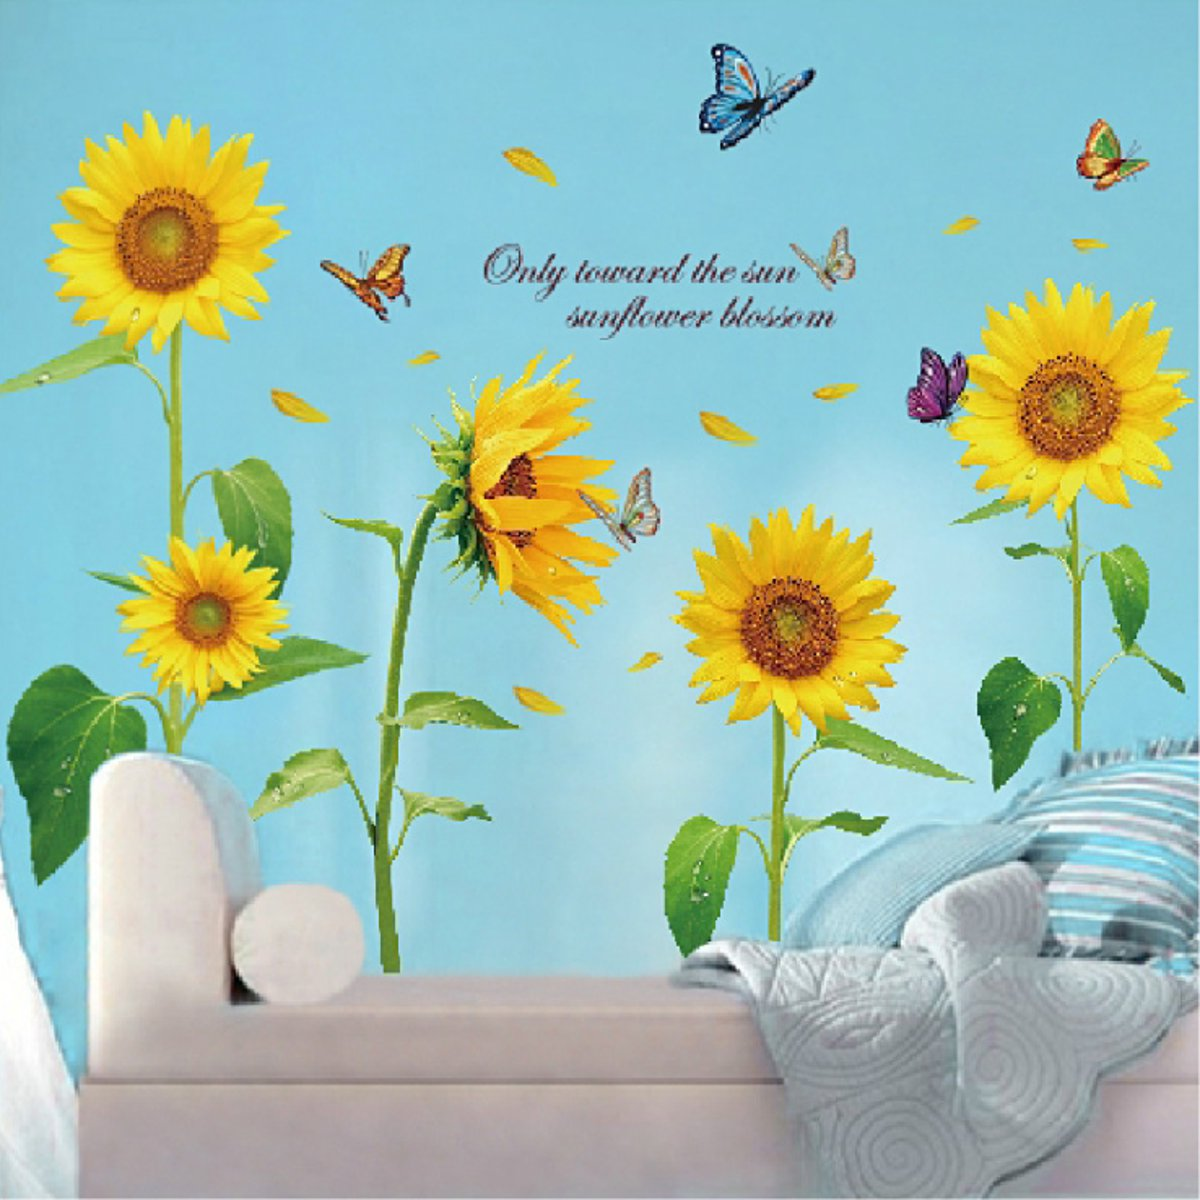 Wall Sticker Removable PVC Cat Butterflies Bedroom Living Room Decoration Decals